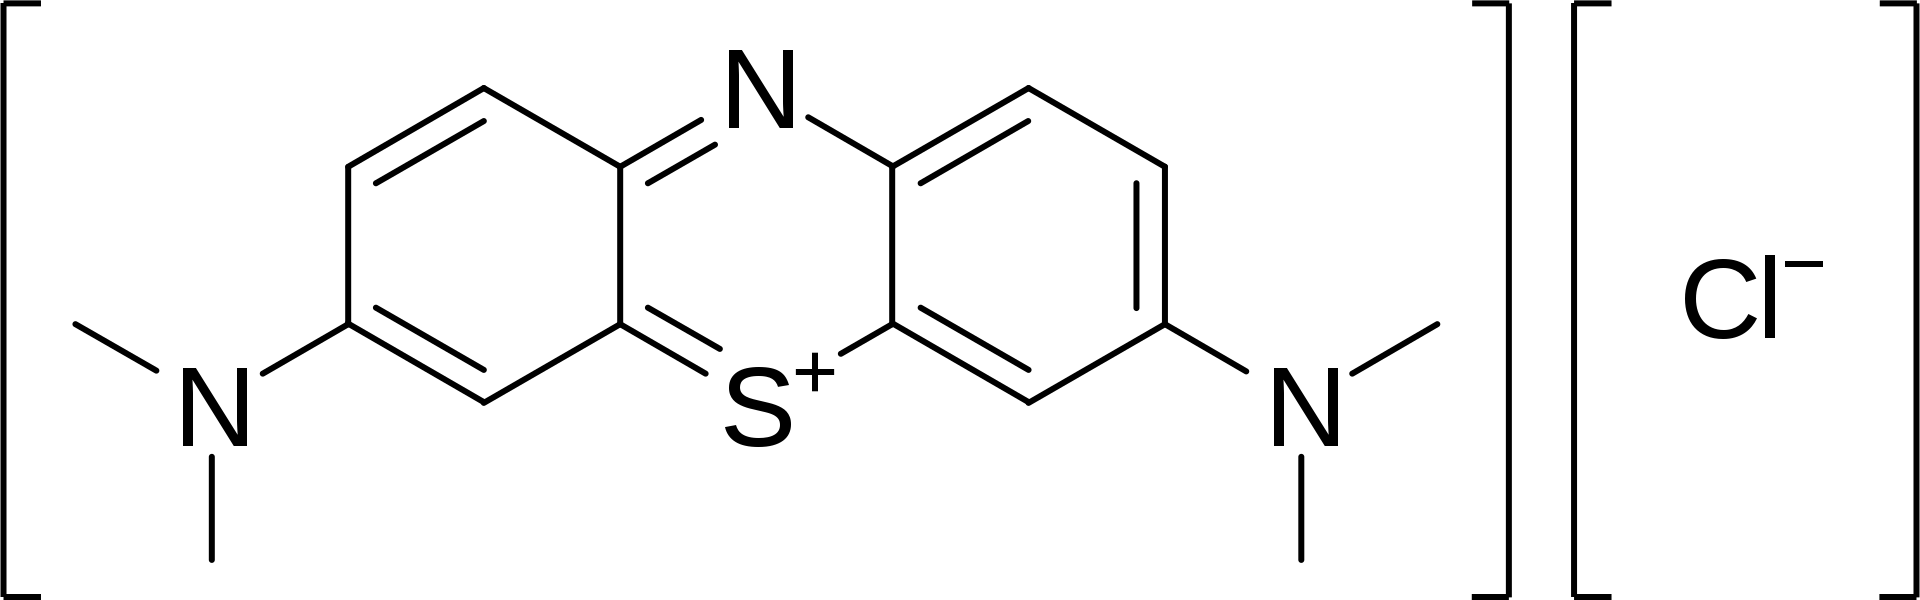 Methylene blue       structure